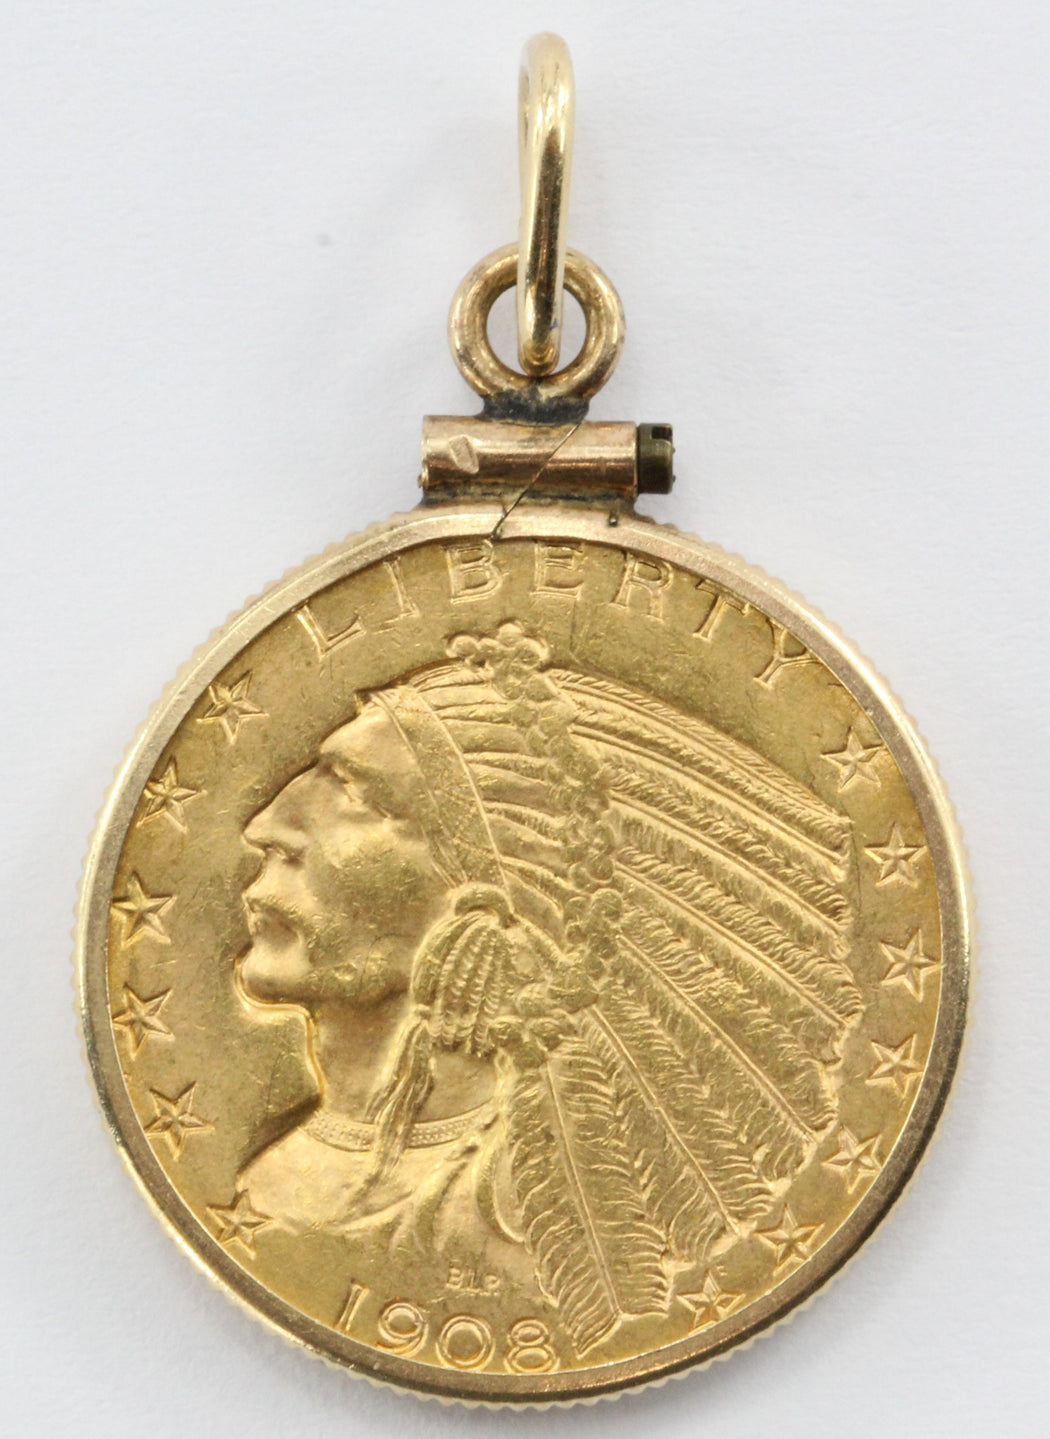 1908 US Indian Head Gold Five Dollar Half Eagle Coin In 14k Gold Bezel